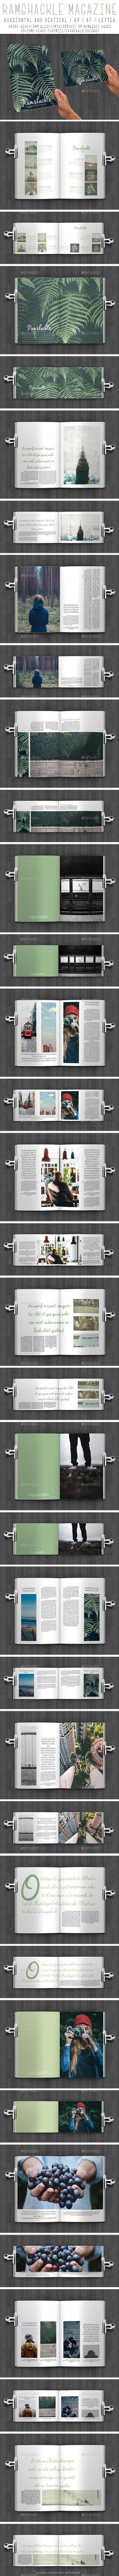 Ramshackle Magazine  #a4 #a5 #beautiful • Click here to download ! http://graphicriver.net/item/ramshackle-magazine/12388819?s_rank=119&ref=pxcr